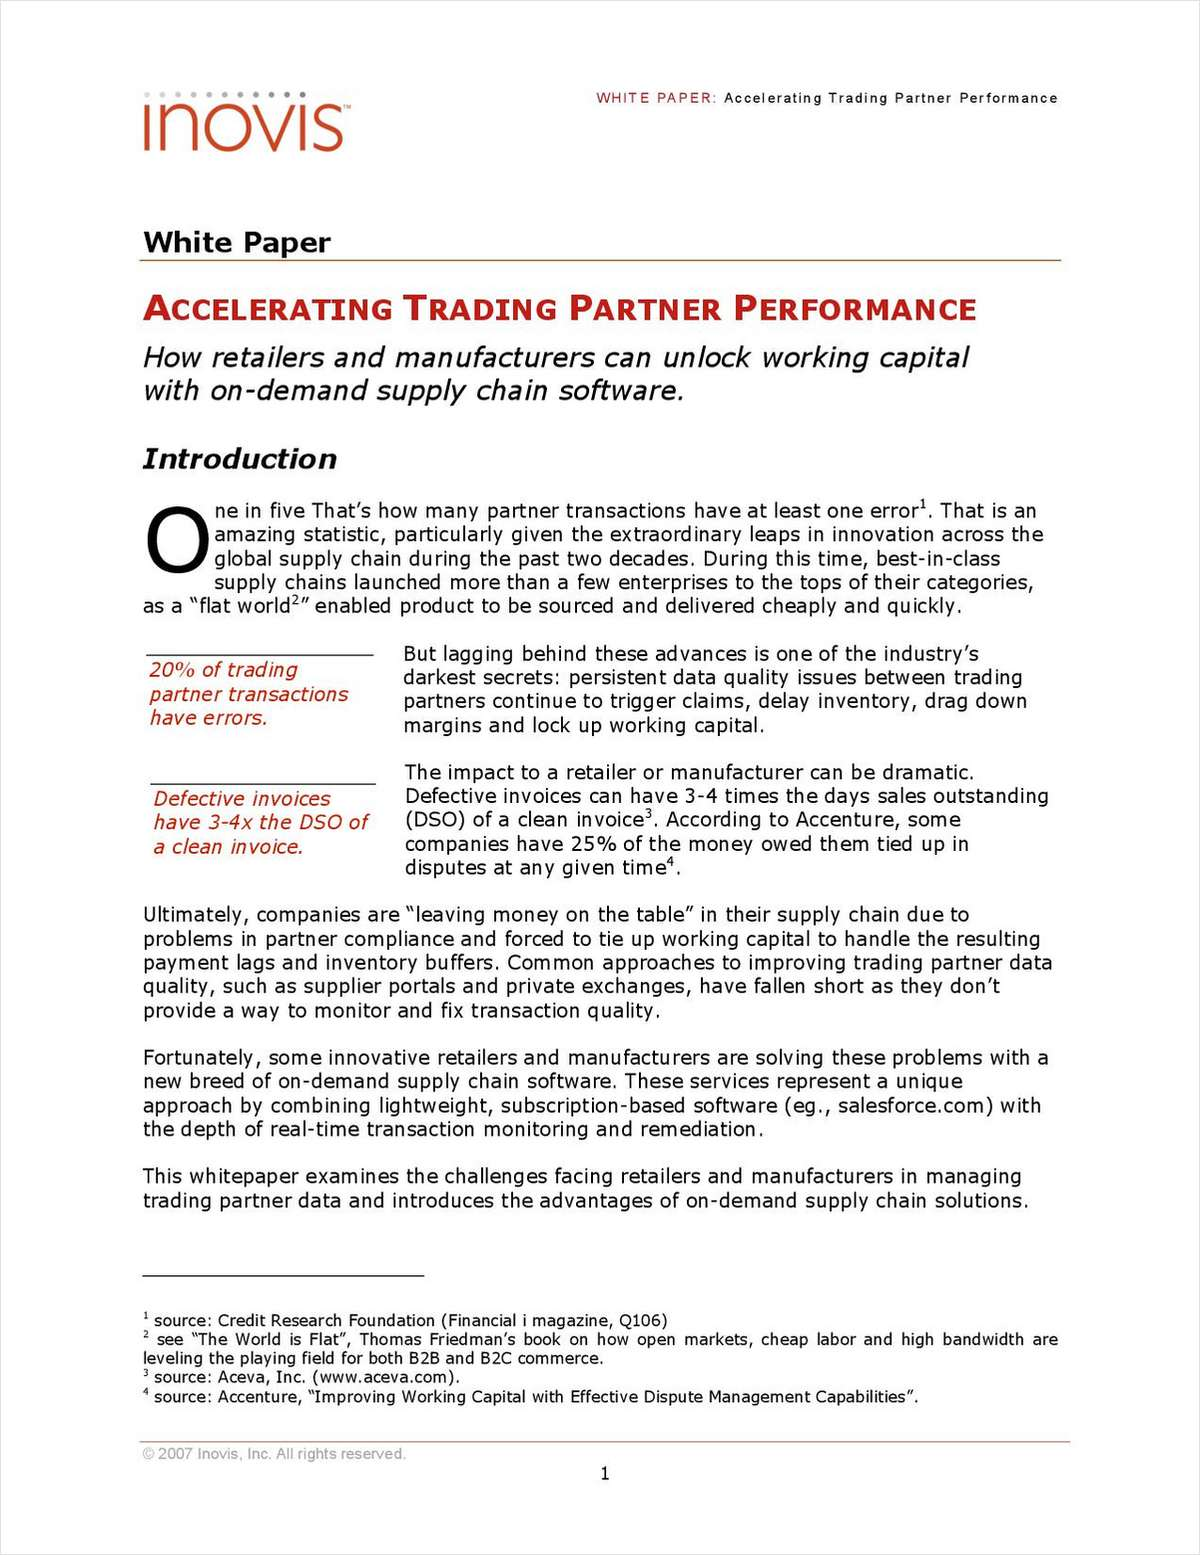 Accelerating Trading Partner Performance: How Retailers and Manufacturers can Unlock Working Capital with on-demand Supply Chain Software